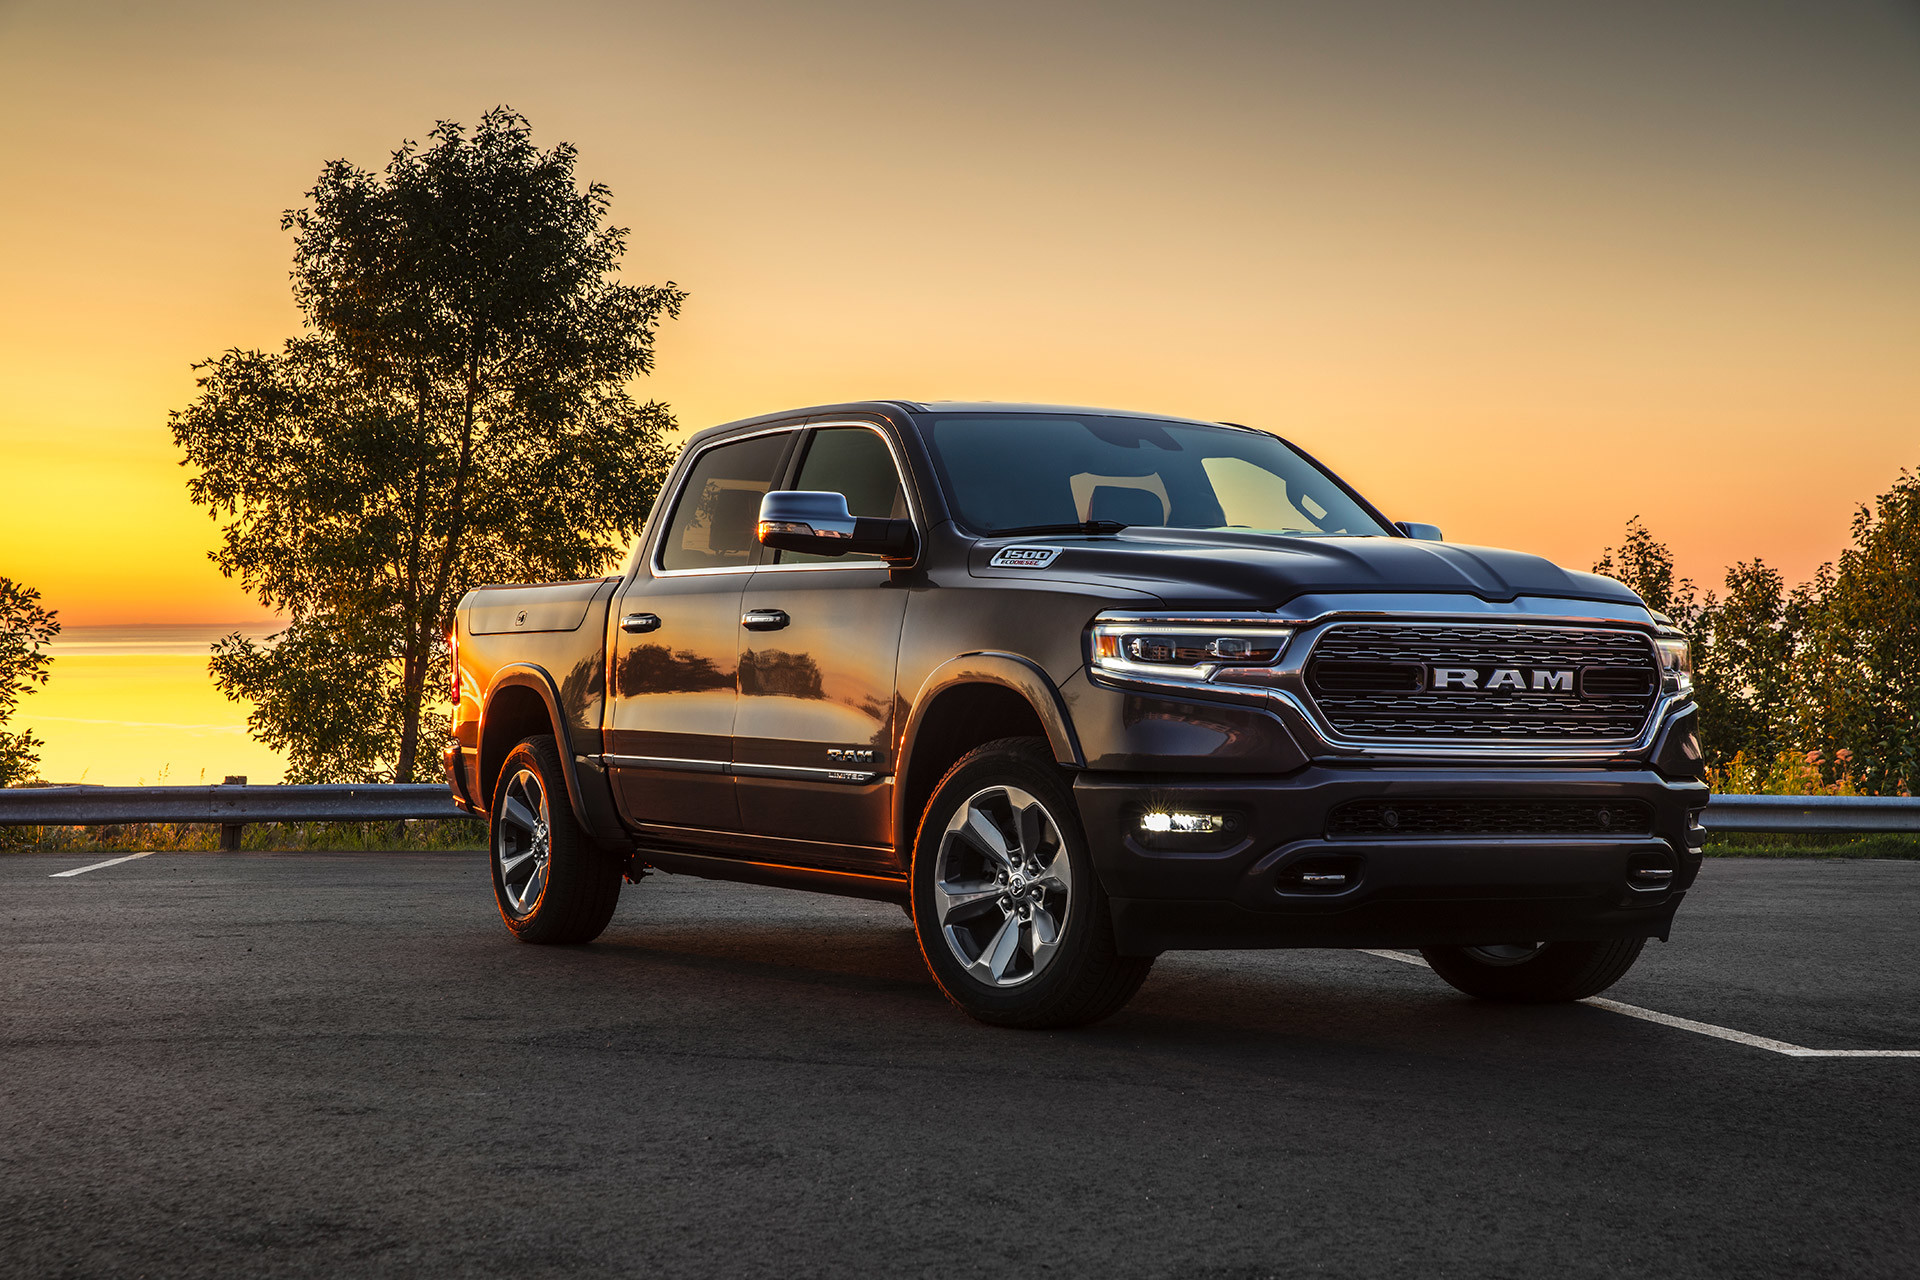 2021 Ram 1500 driving on a road at sunset.